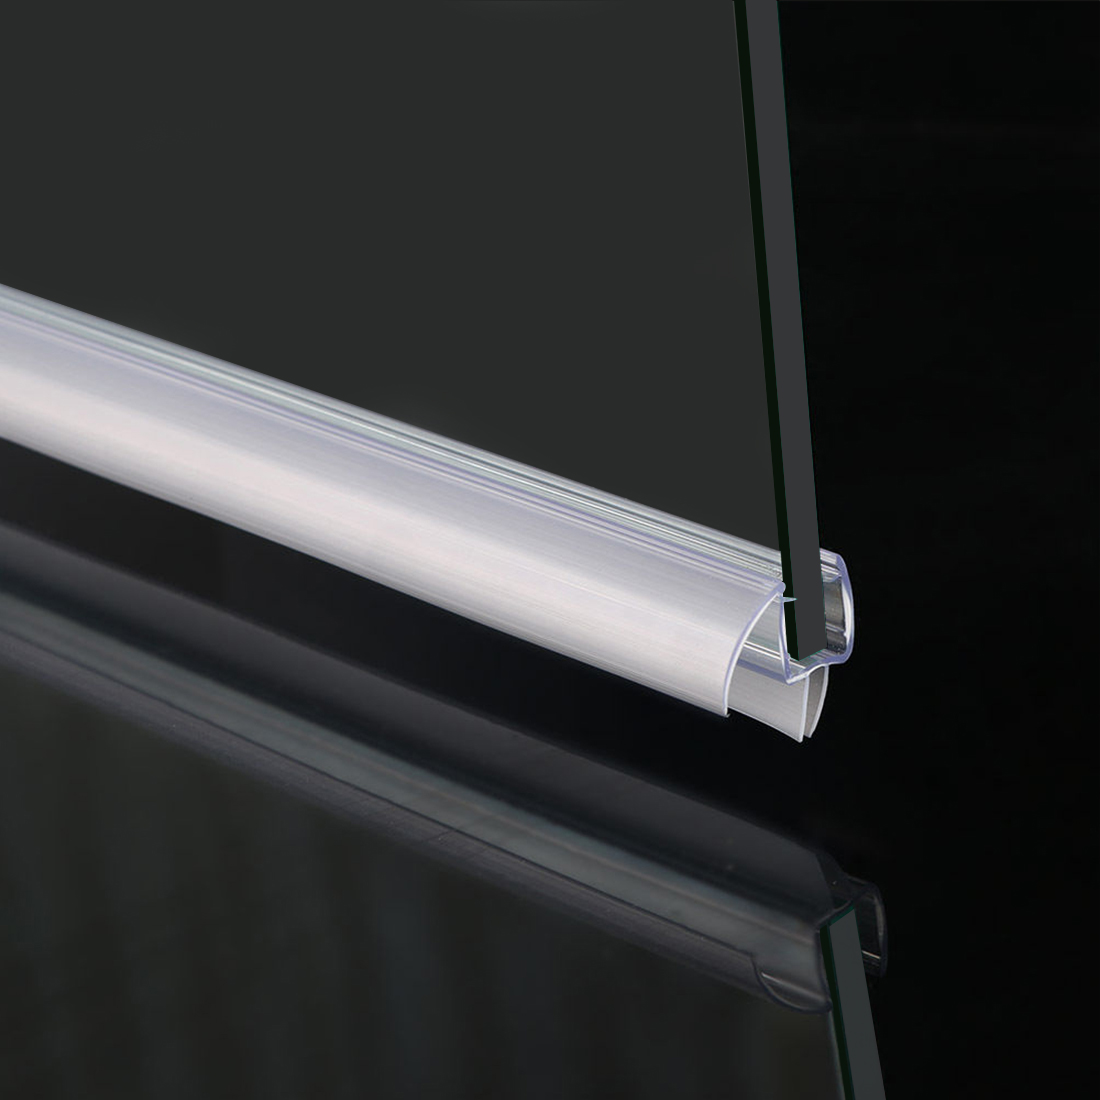 Details About Elegant 3 8 Frameless Glass Shower Door Bottom Seal Sweep Rail 28 In Long